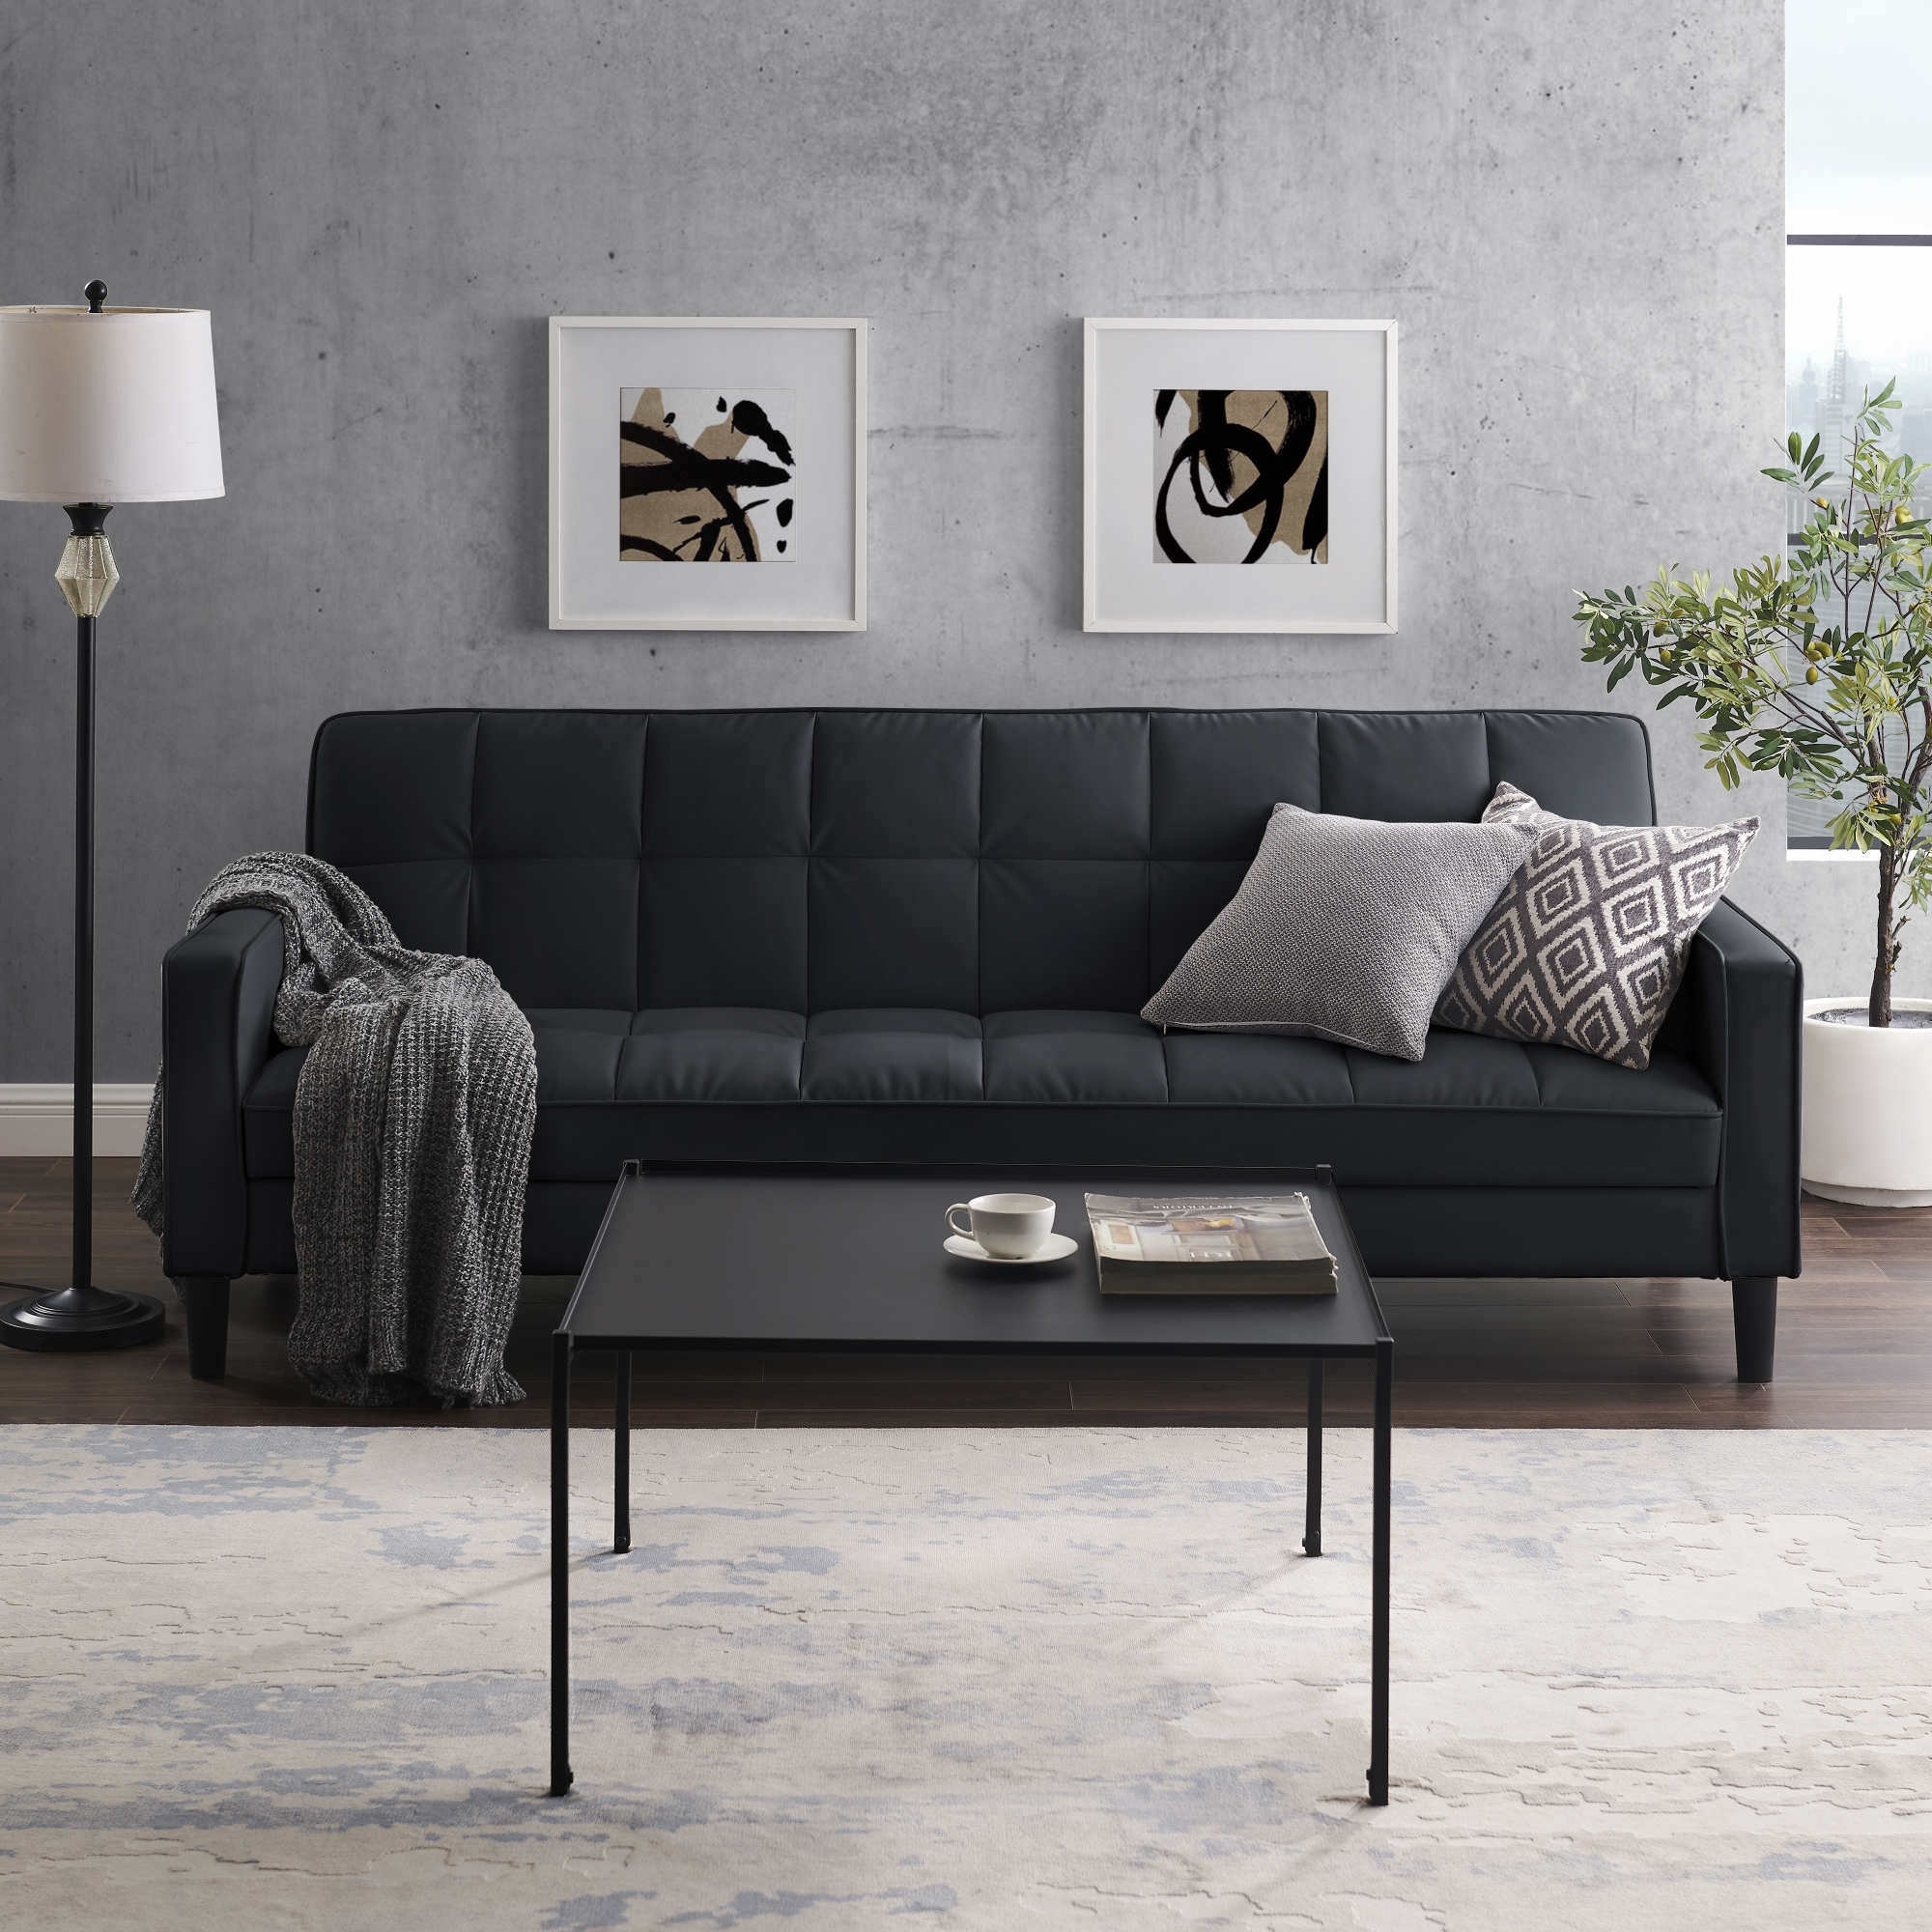 Loft Lyfe Black Leather Pu Sofa Bed Convertible Tufted